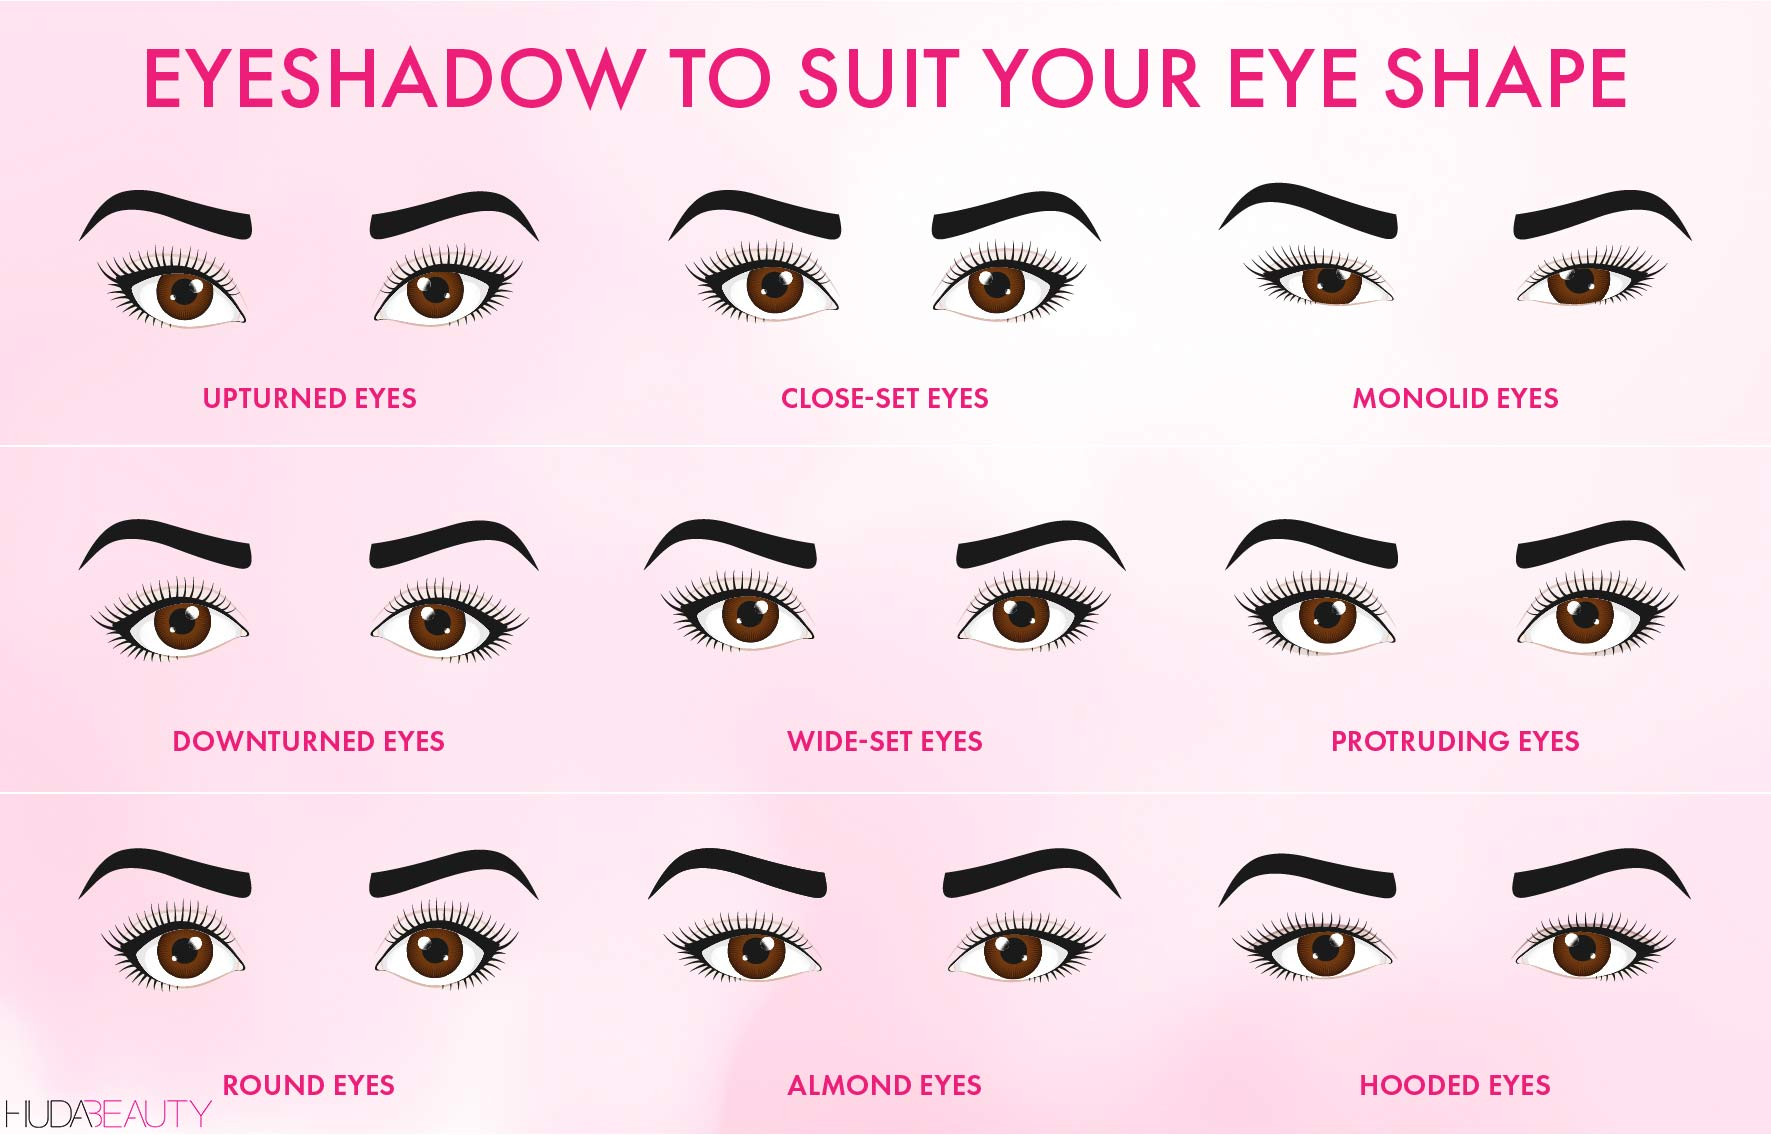 Eyeshadow to suit your eye shape